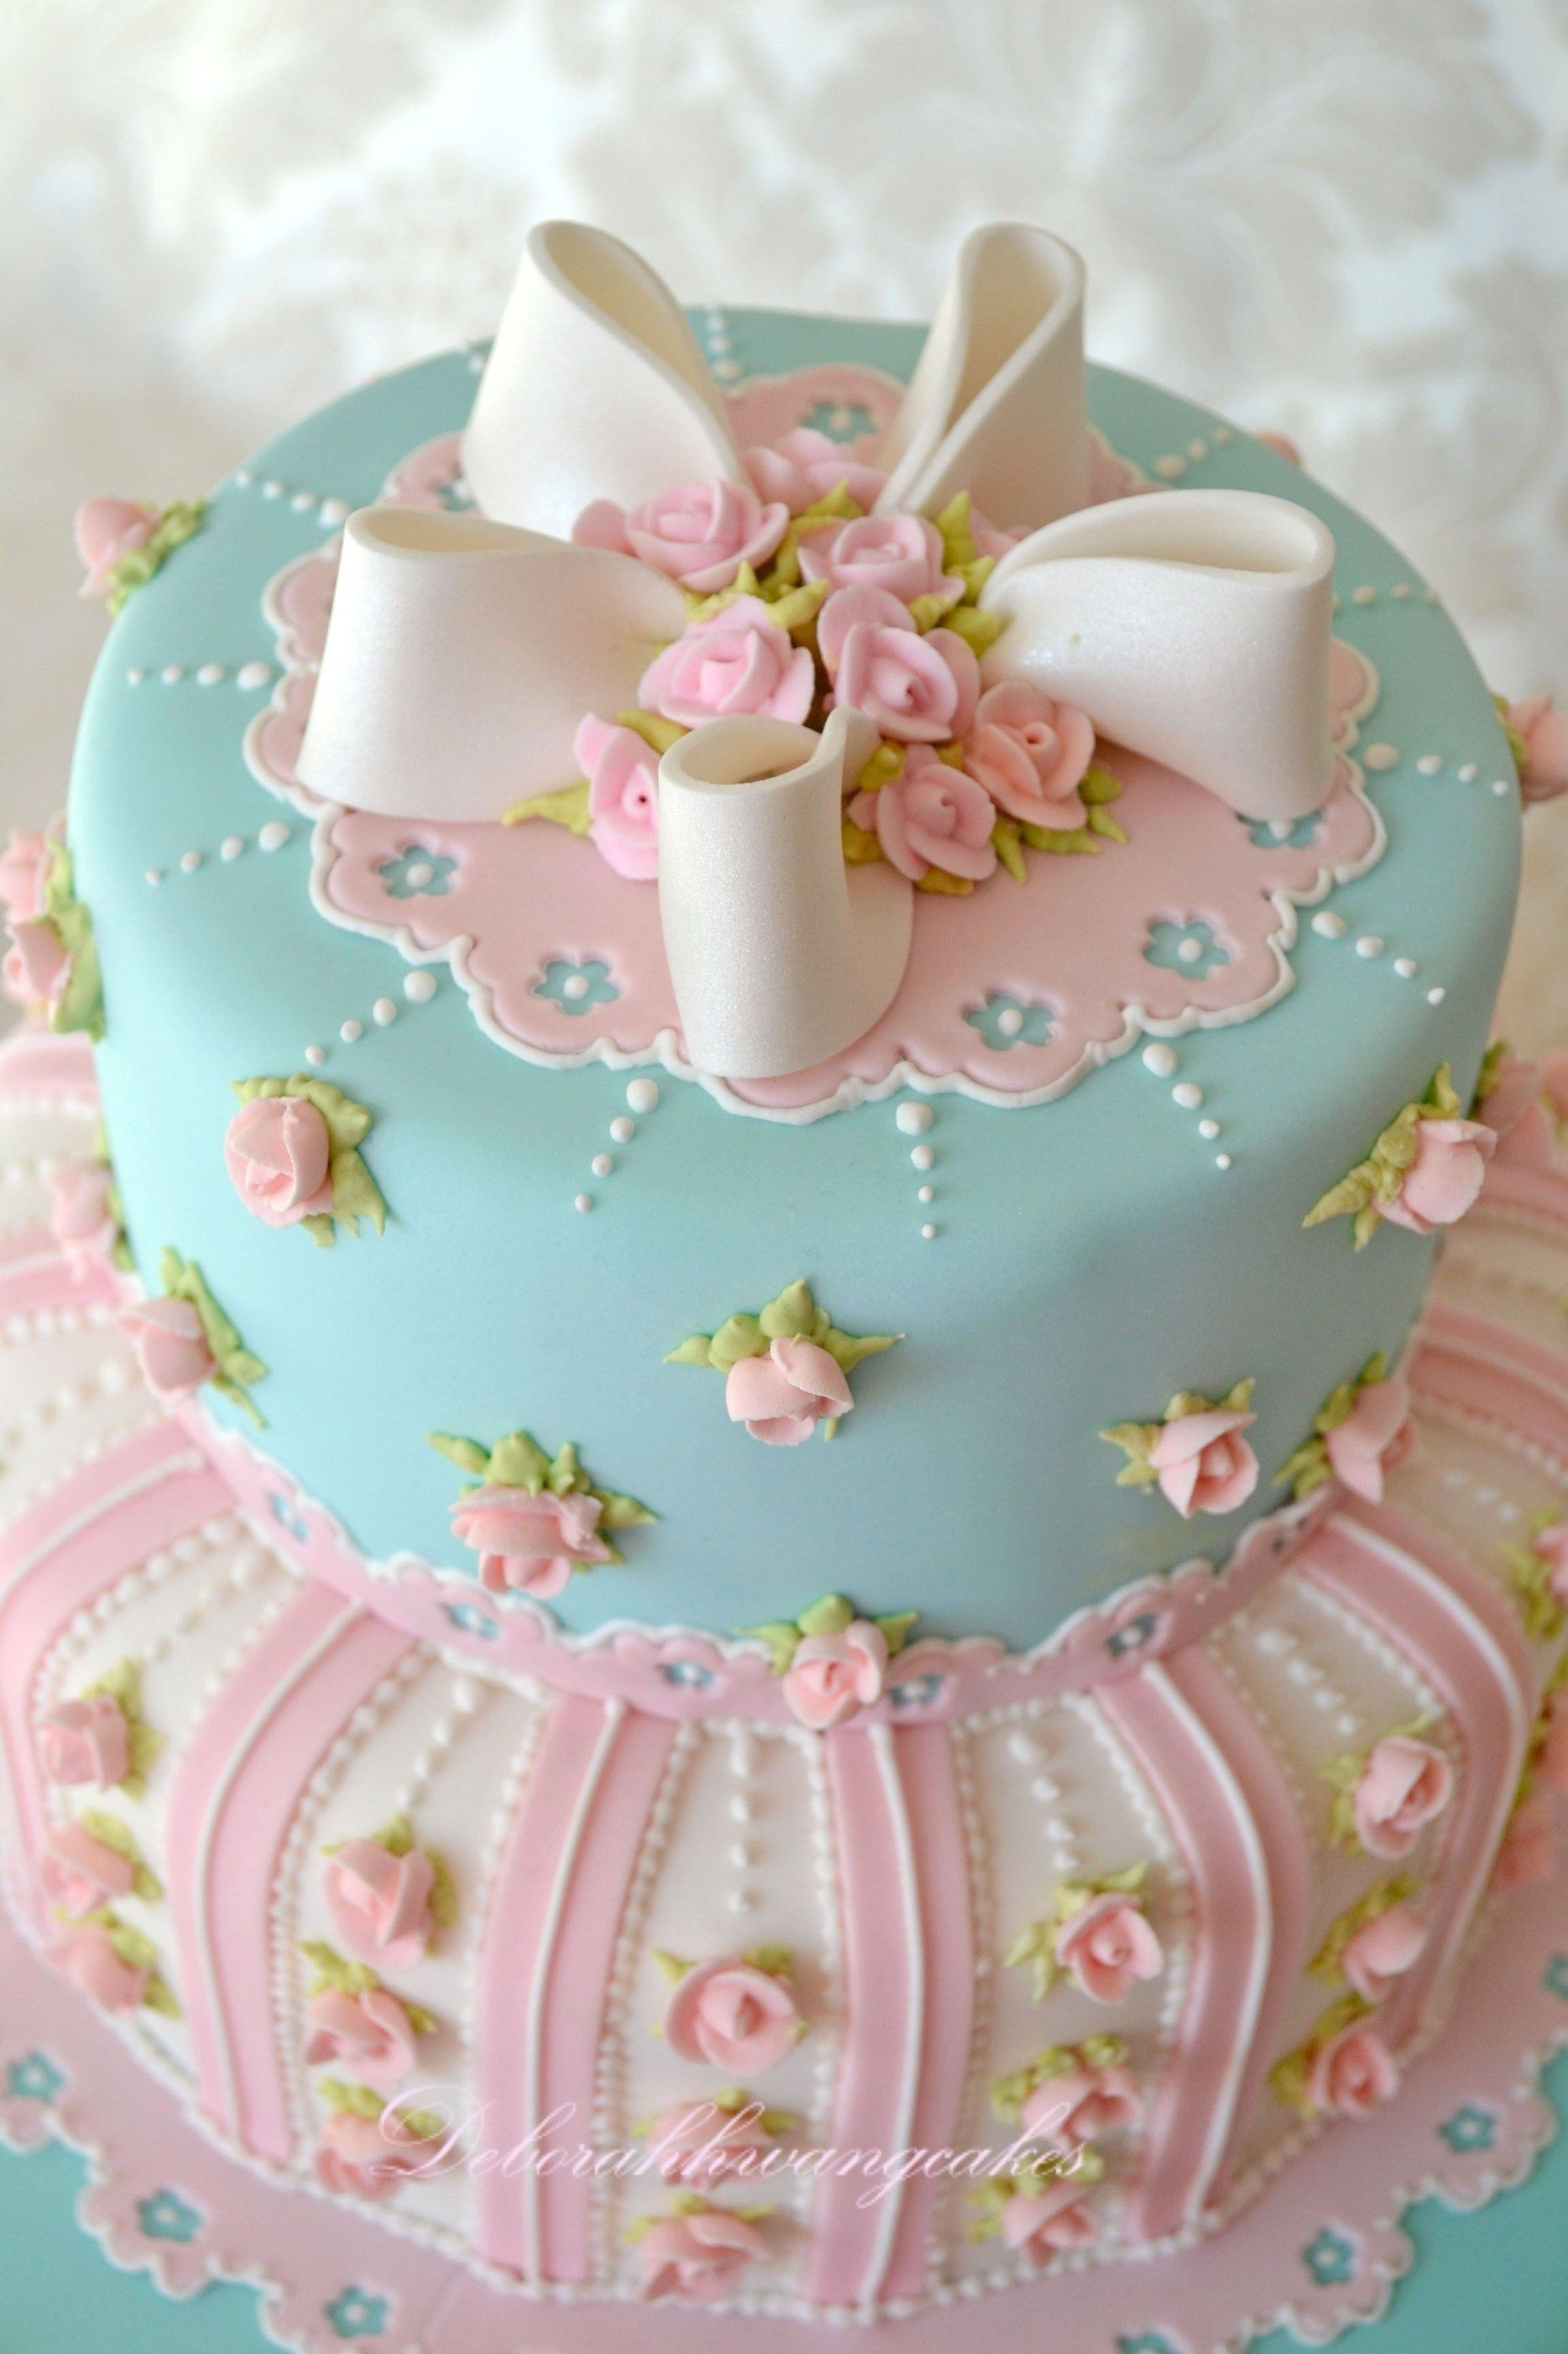 21 Elegant Image Of Cakes For Birthday With Images Shabby